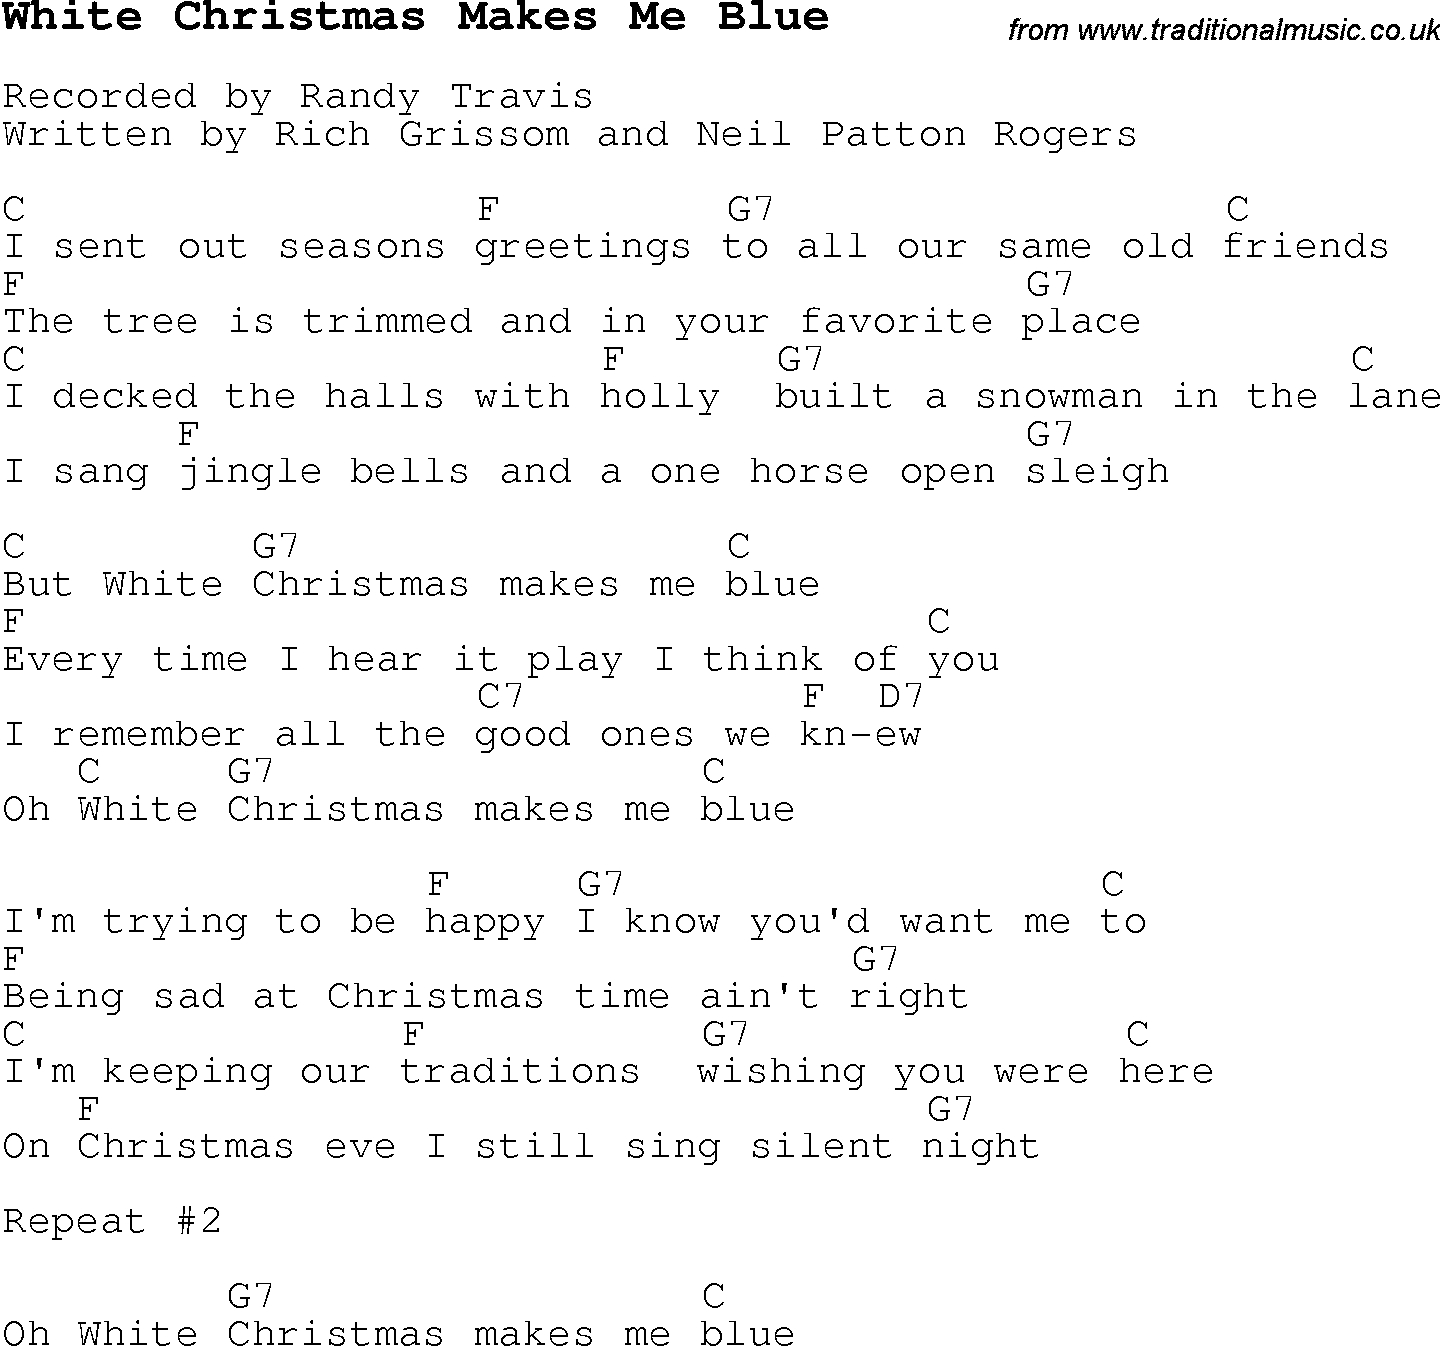 Blue Christmas Chords Christmas Carolsong Lyrics With Chords For White Christmas Makes Me